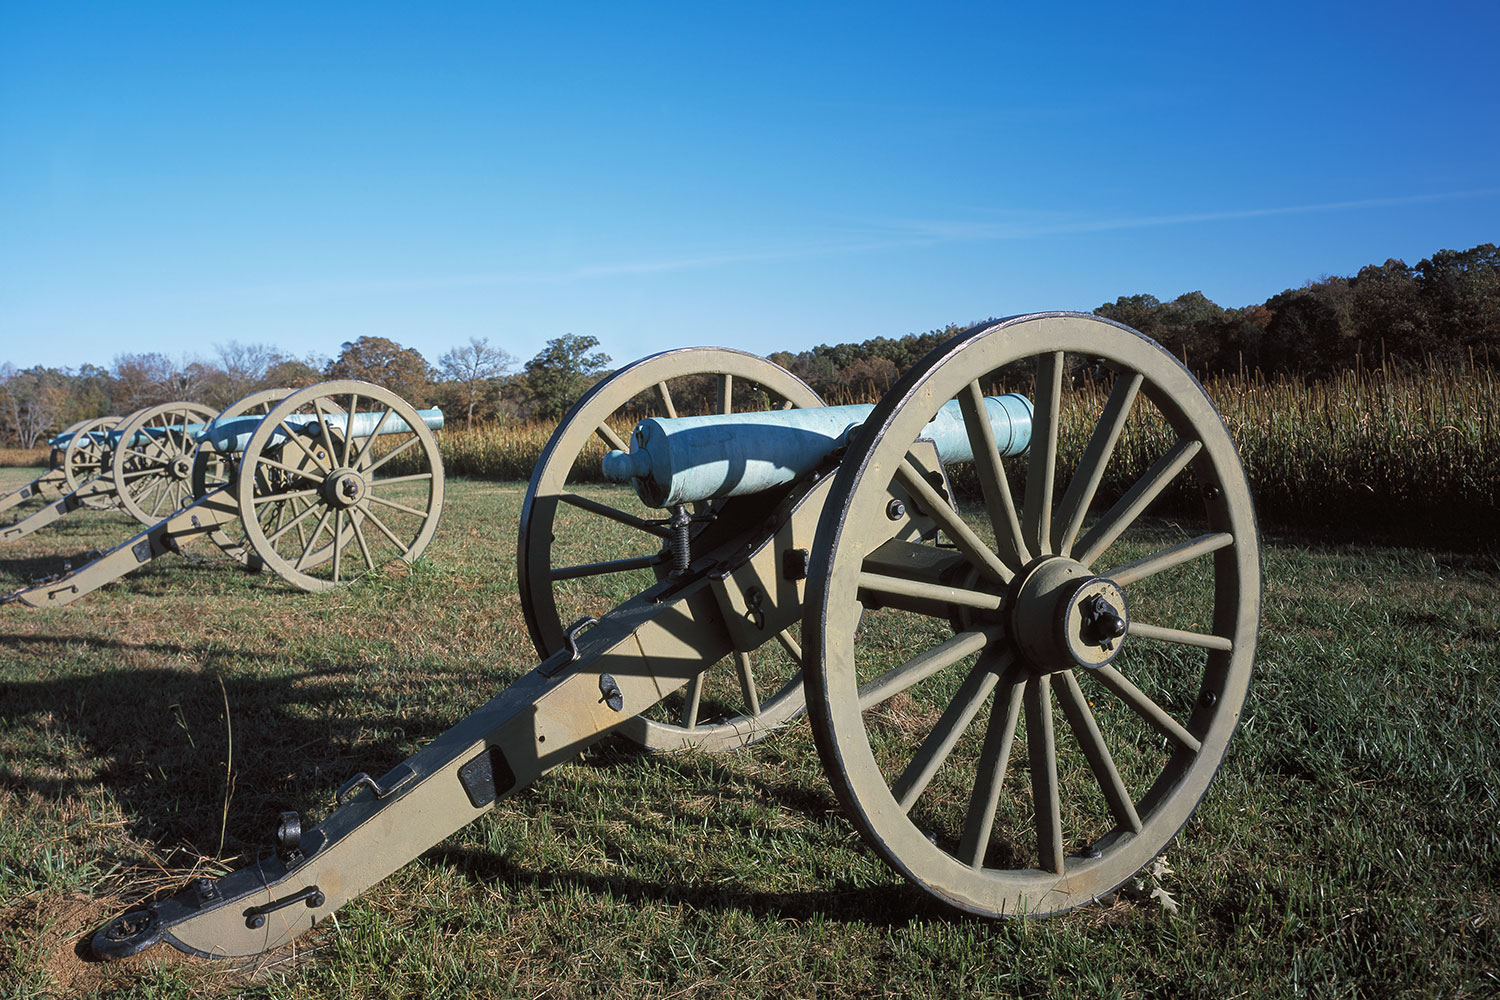 Union field artillery pieces at Shiloh National Military Park in Tennessee.